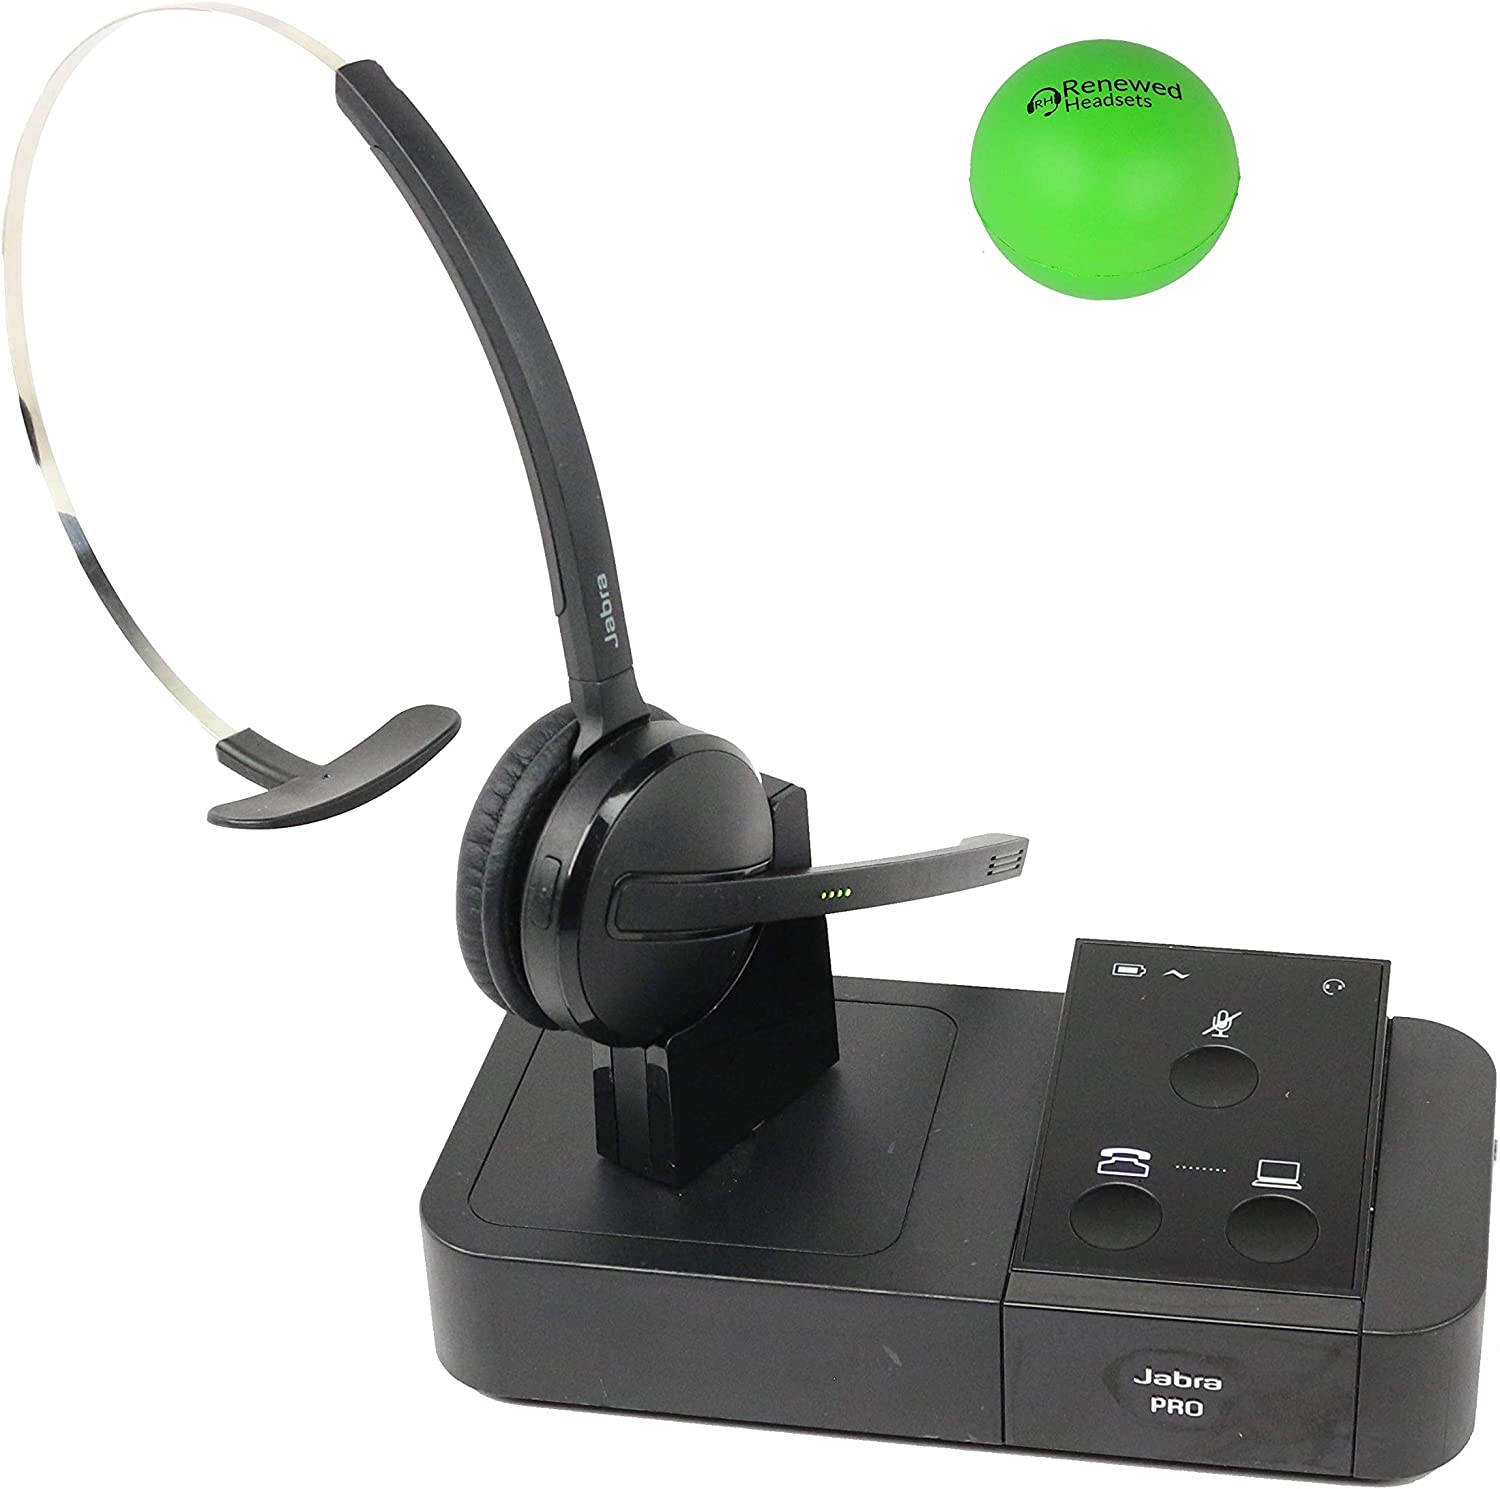 Amazon Com Jabra Pro 9450 Wireless Headset Bundle With Renewed Headsets Stress Ball Renewed Office Products